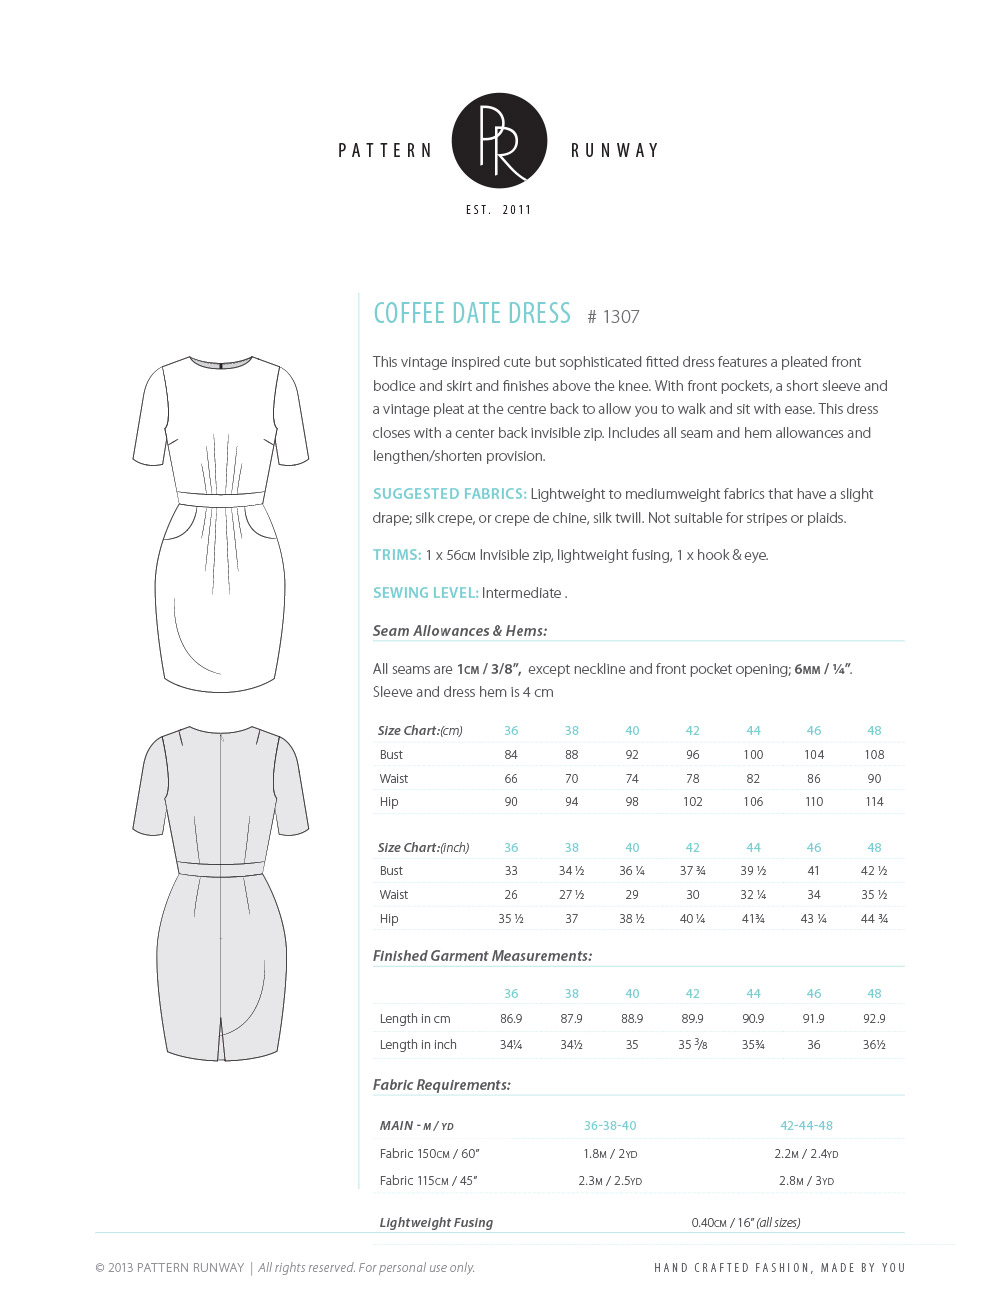 Coffee Date Dress Pattern Info